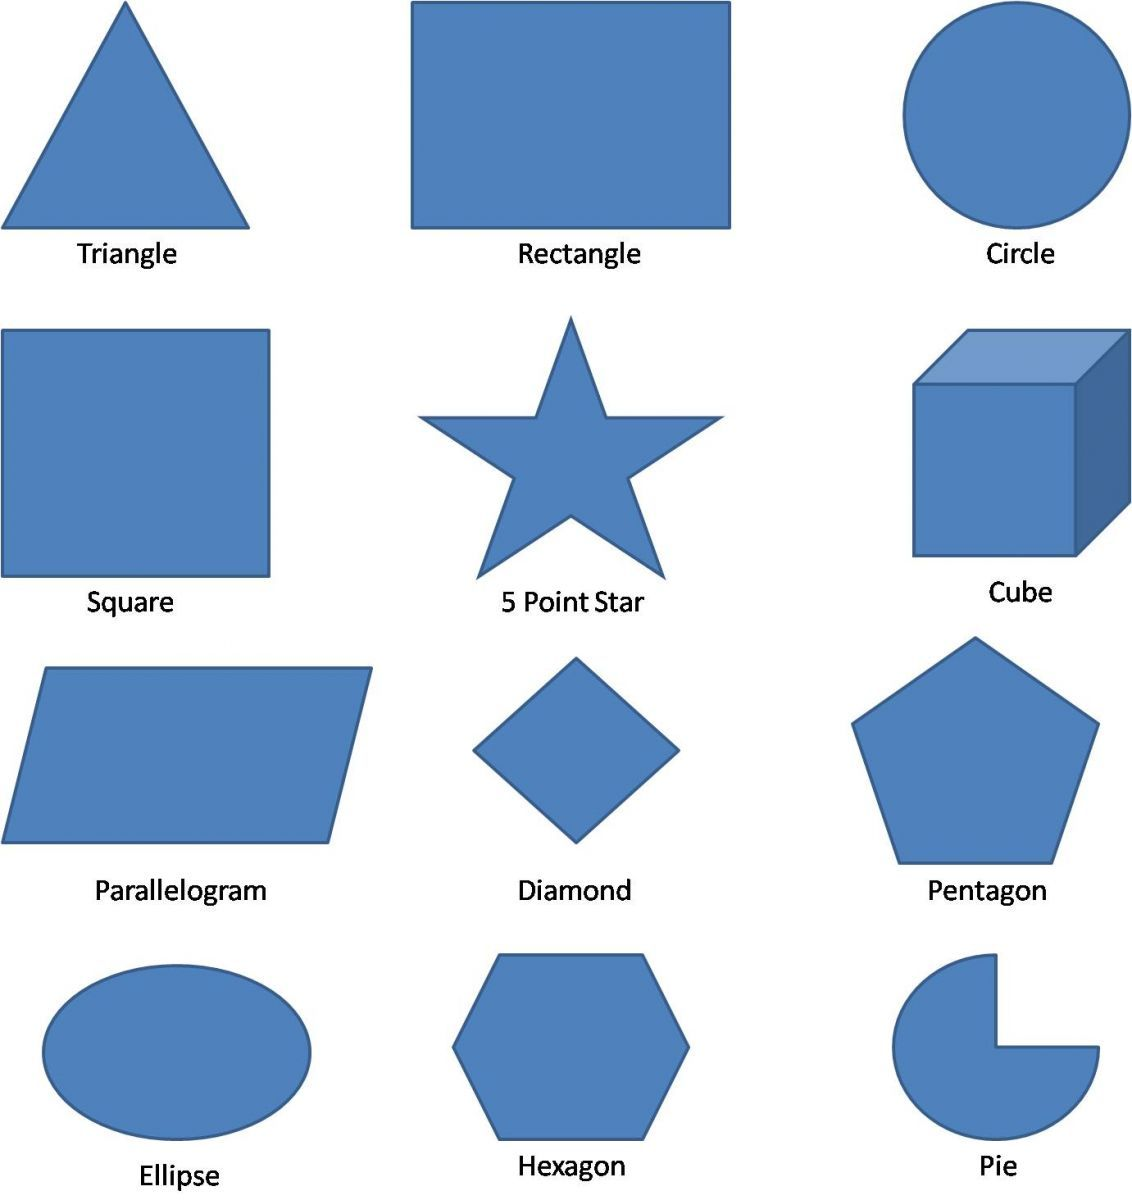 hight resolution of Geometry worksheets for grade 3 kids for math olympiad prepartions. Learn  the basic shapes like square